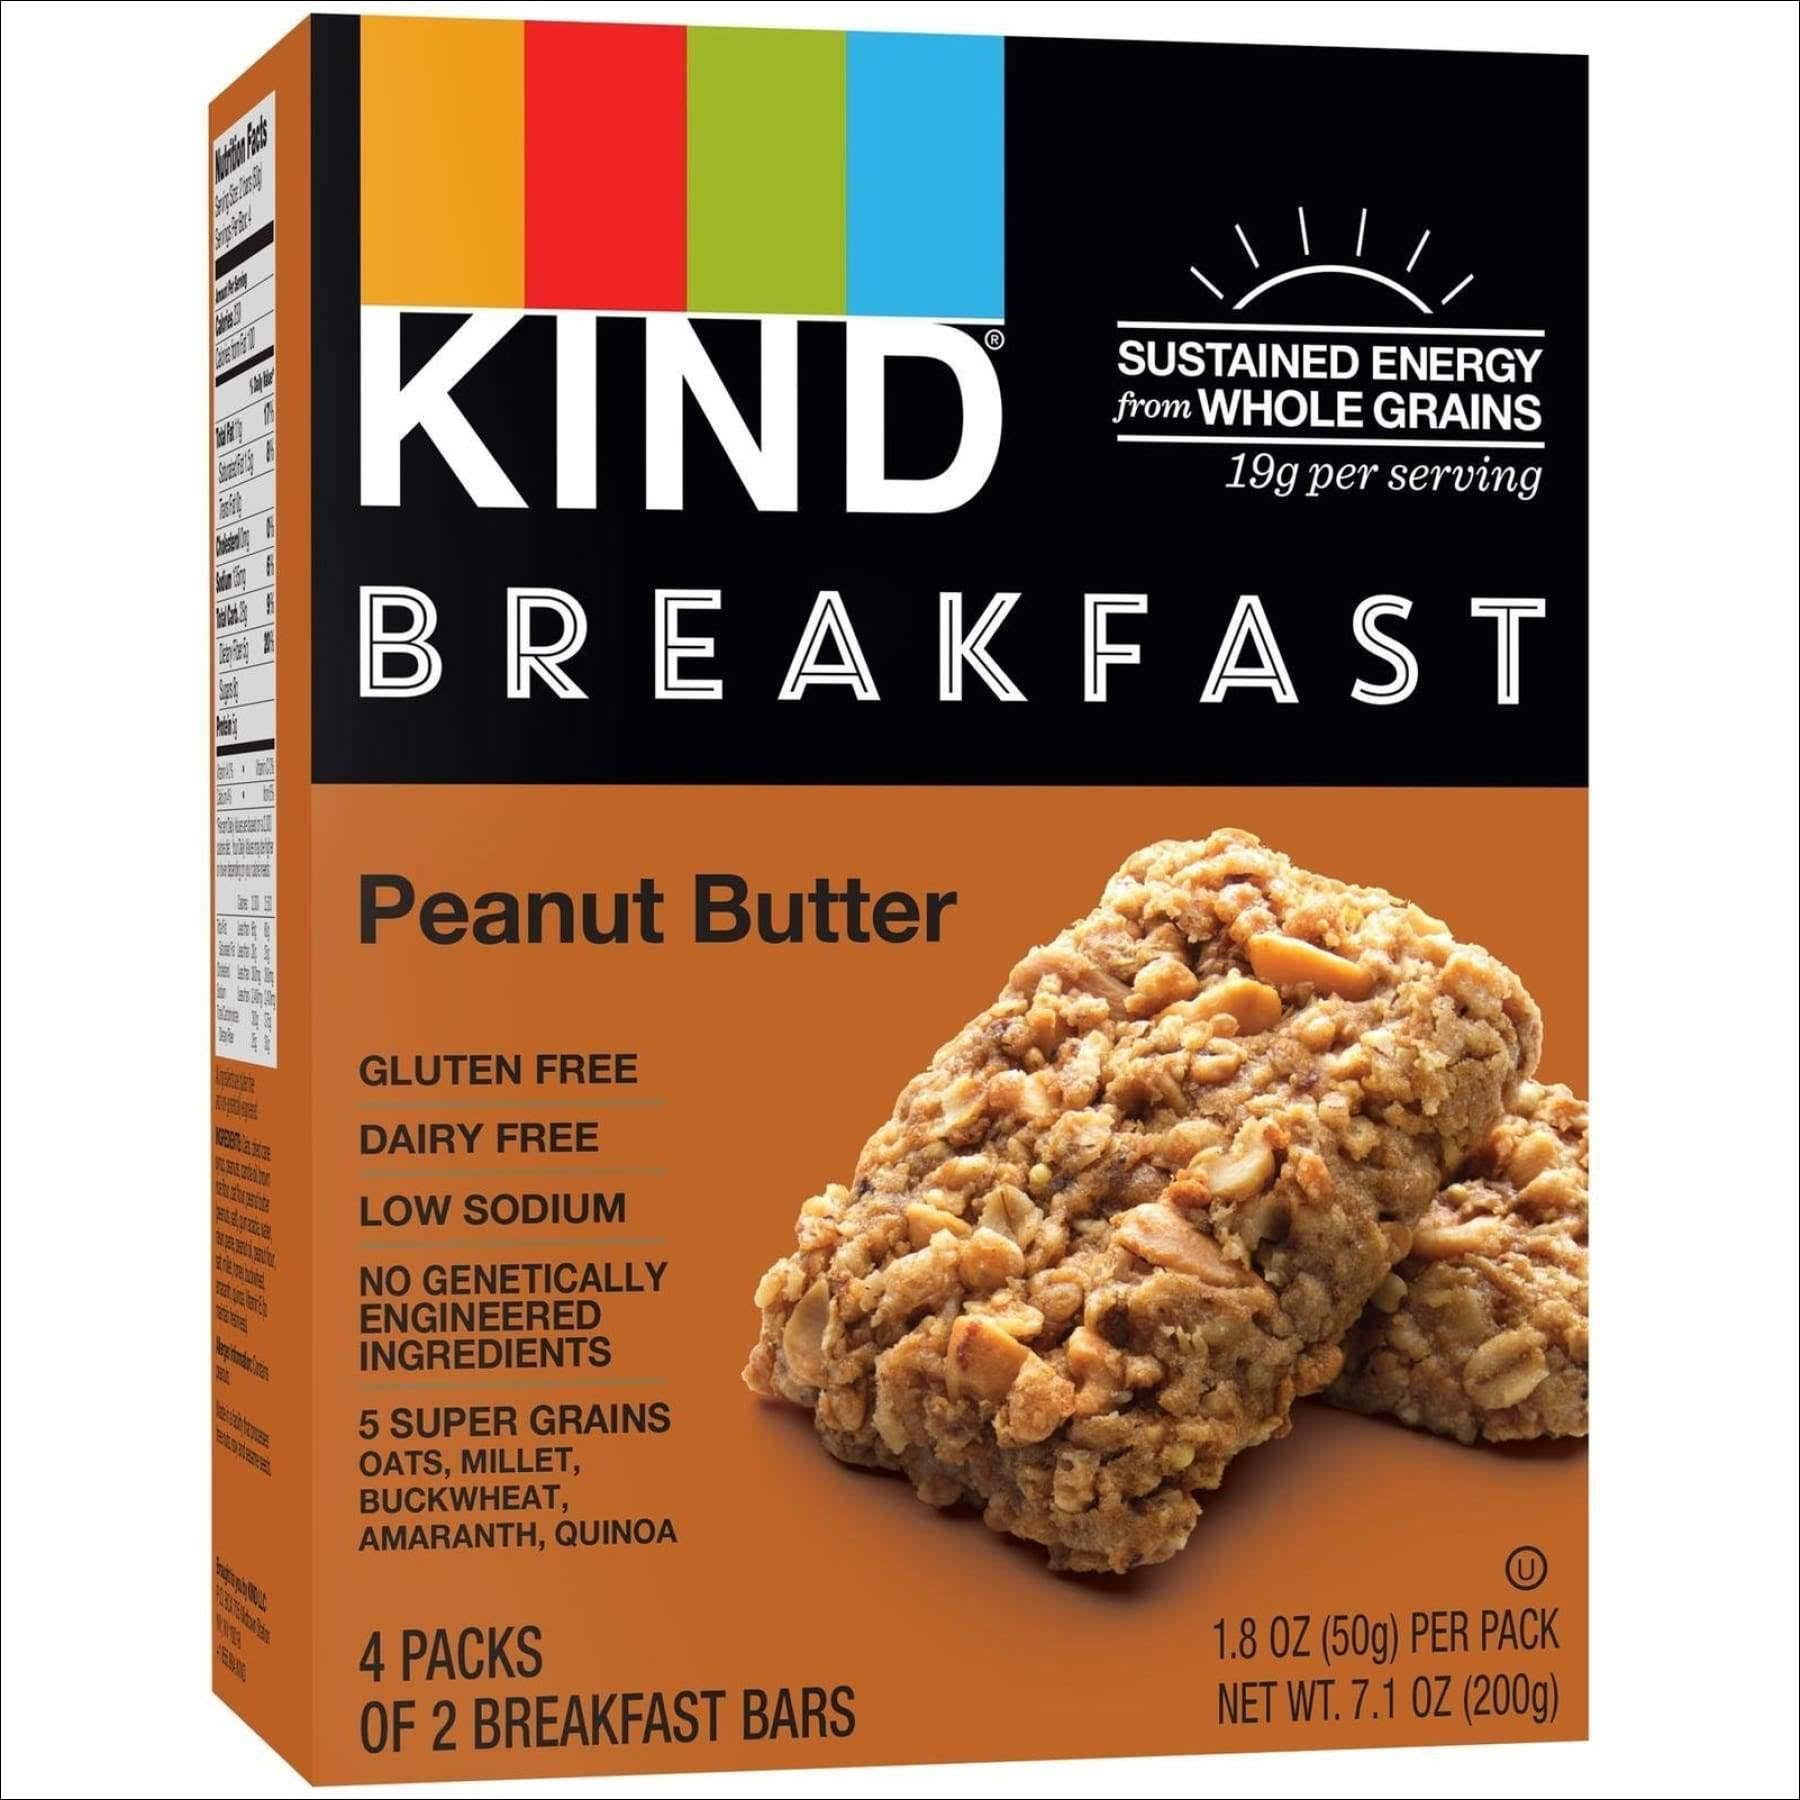 Kind Peanut Butter Breakfast Bar - Peanut Butter